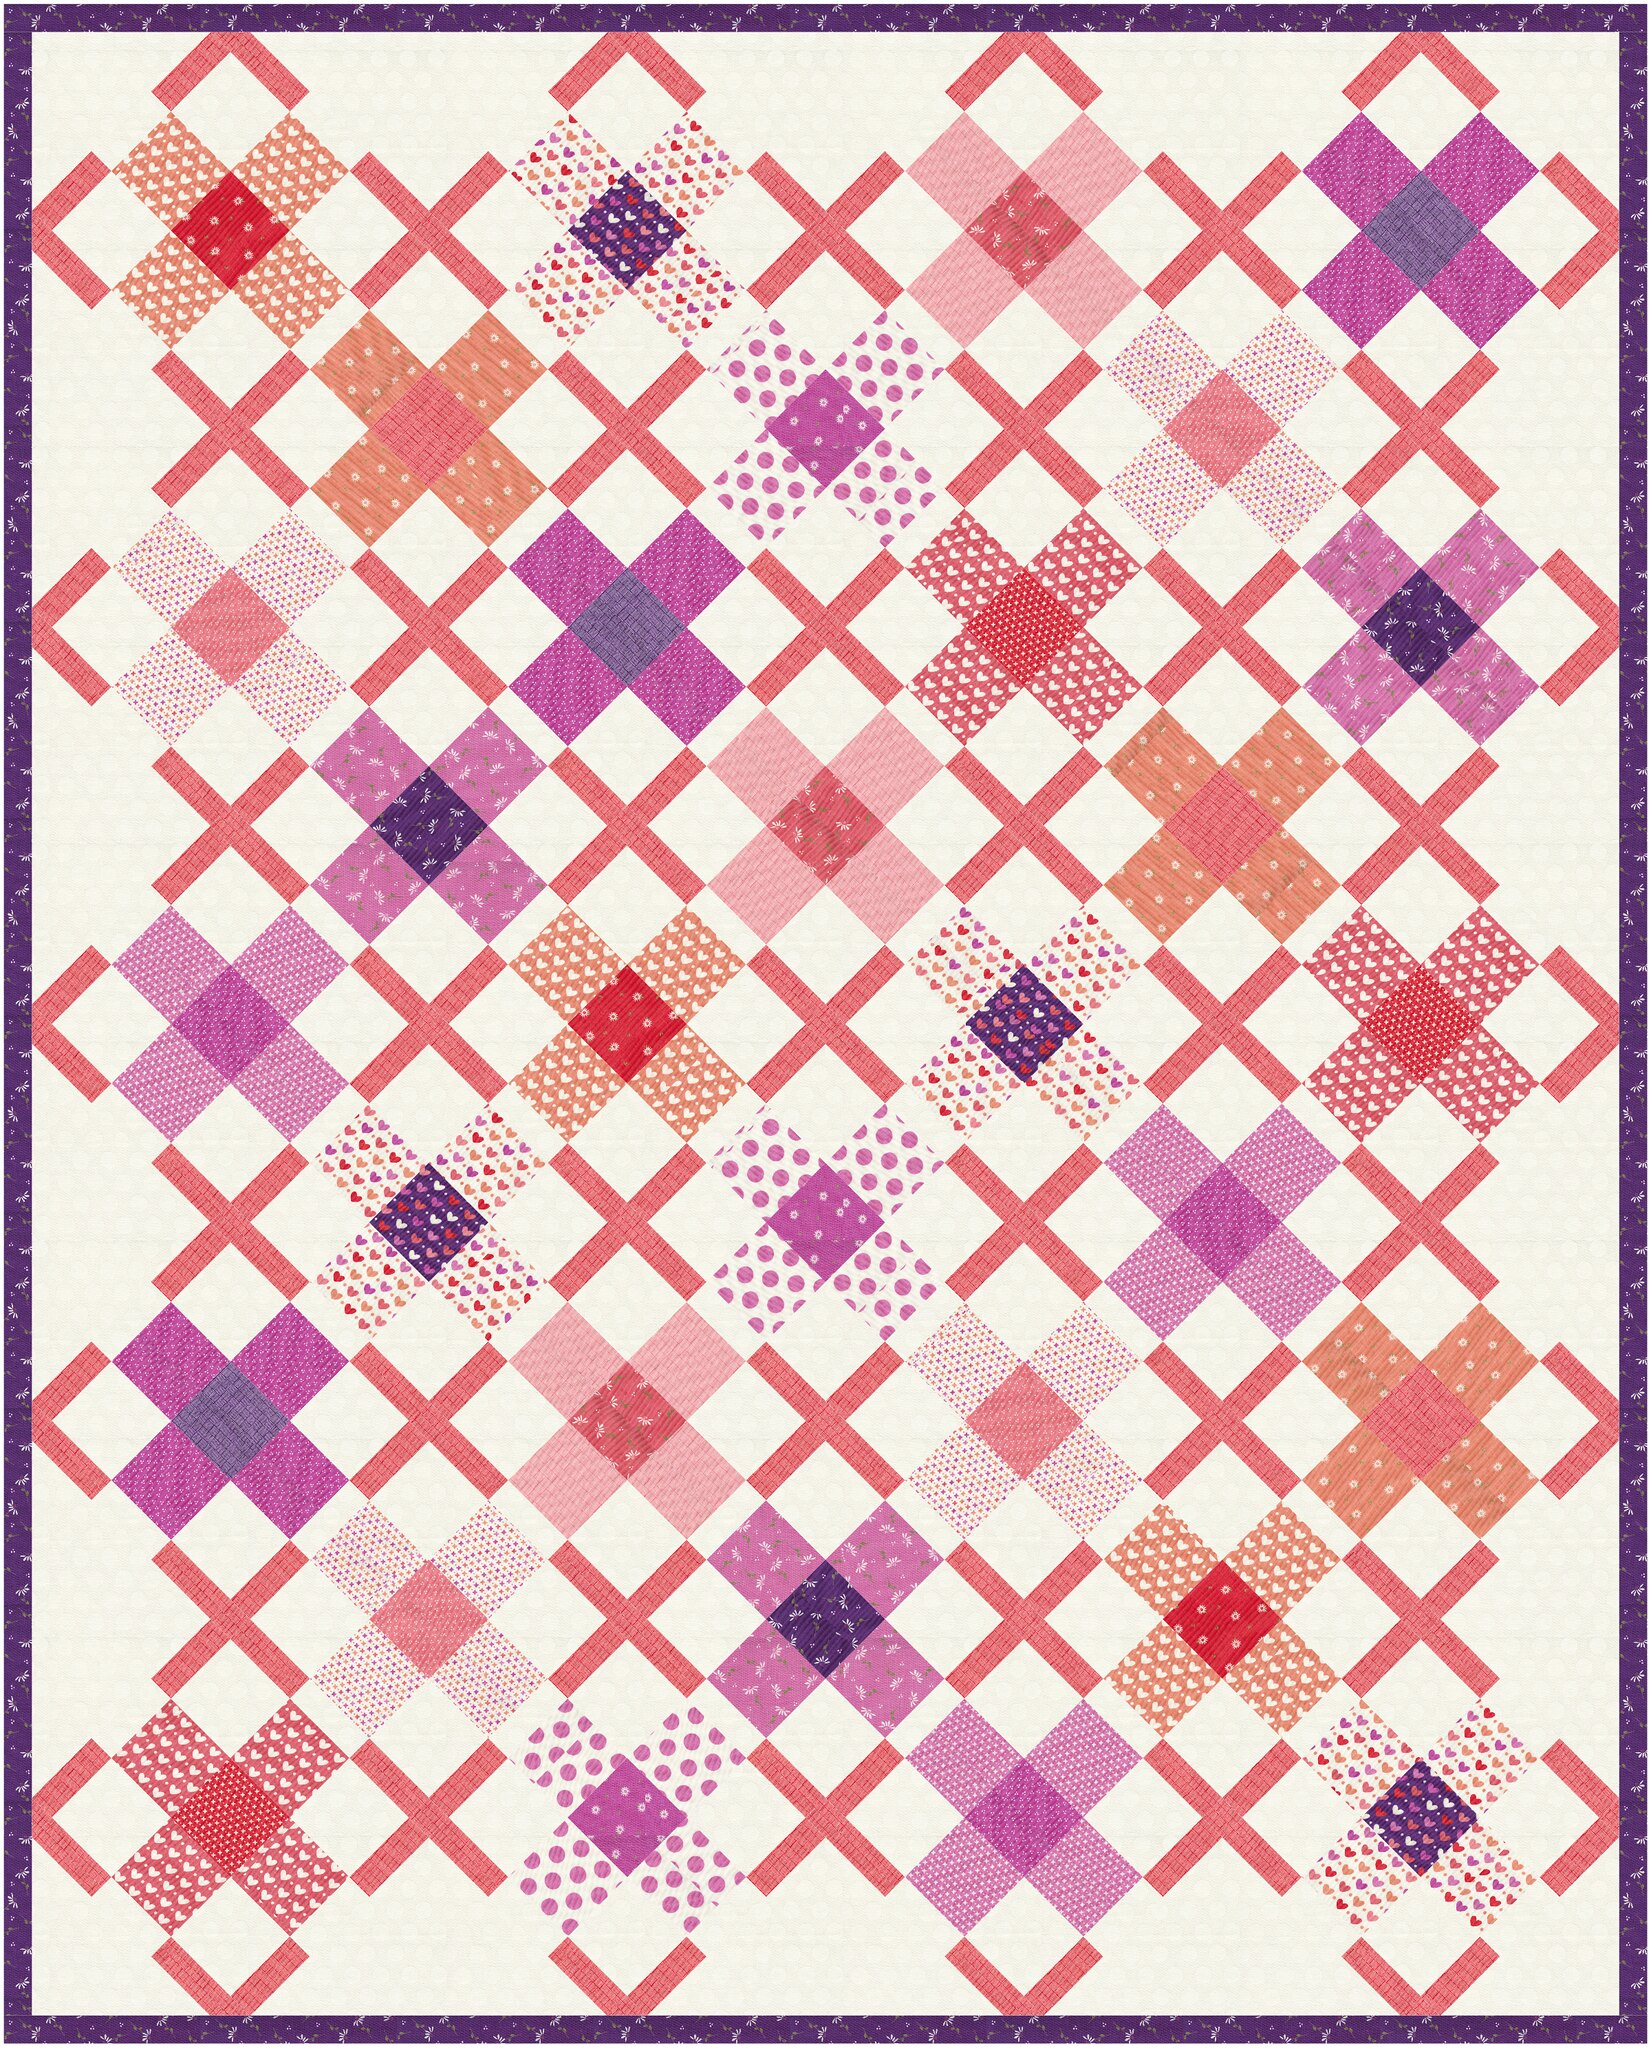 The Ruth Quilt in Sincerely Yours - Kitchen Table Quilting